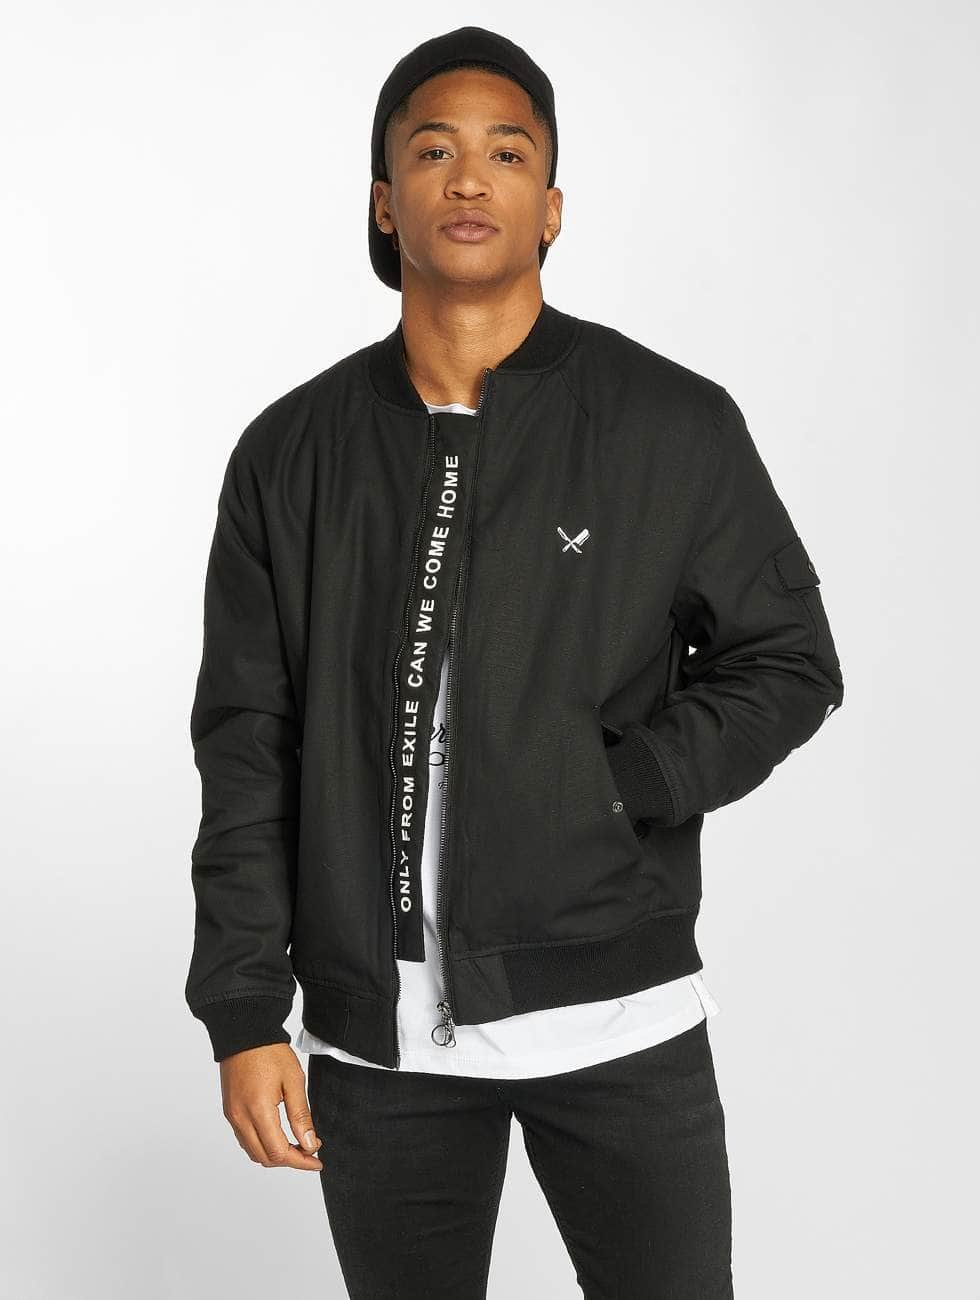 Distorted People Bomber jacket Black Tribe Patched black